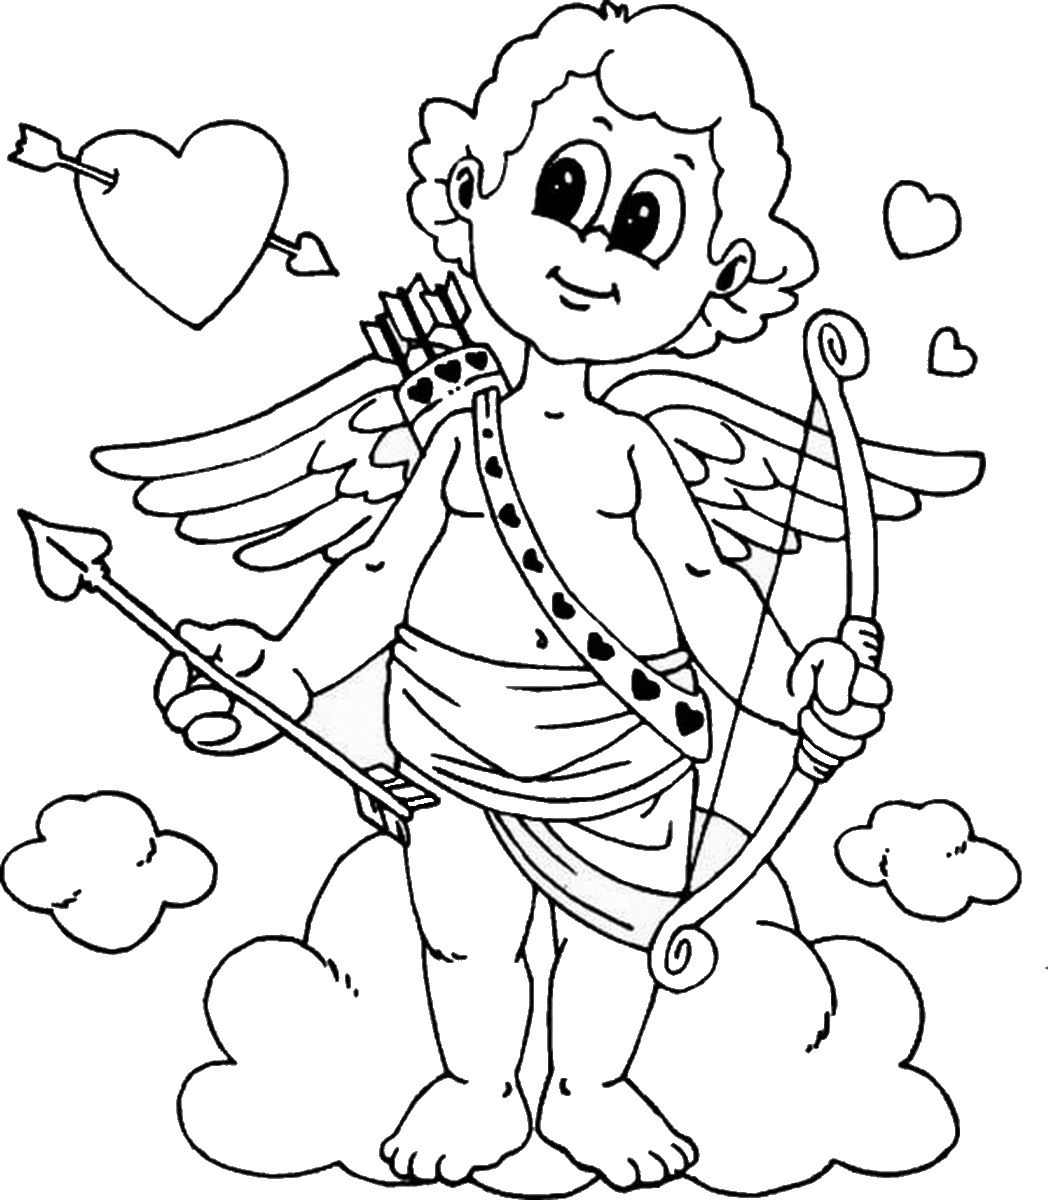 valentines coloring pages printable valentines day coloring pages coloring valentines pages printable